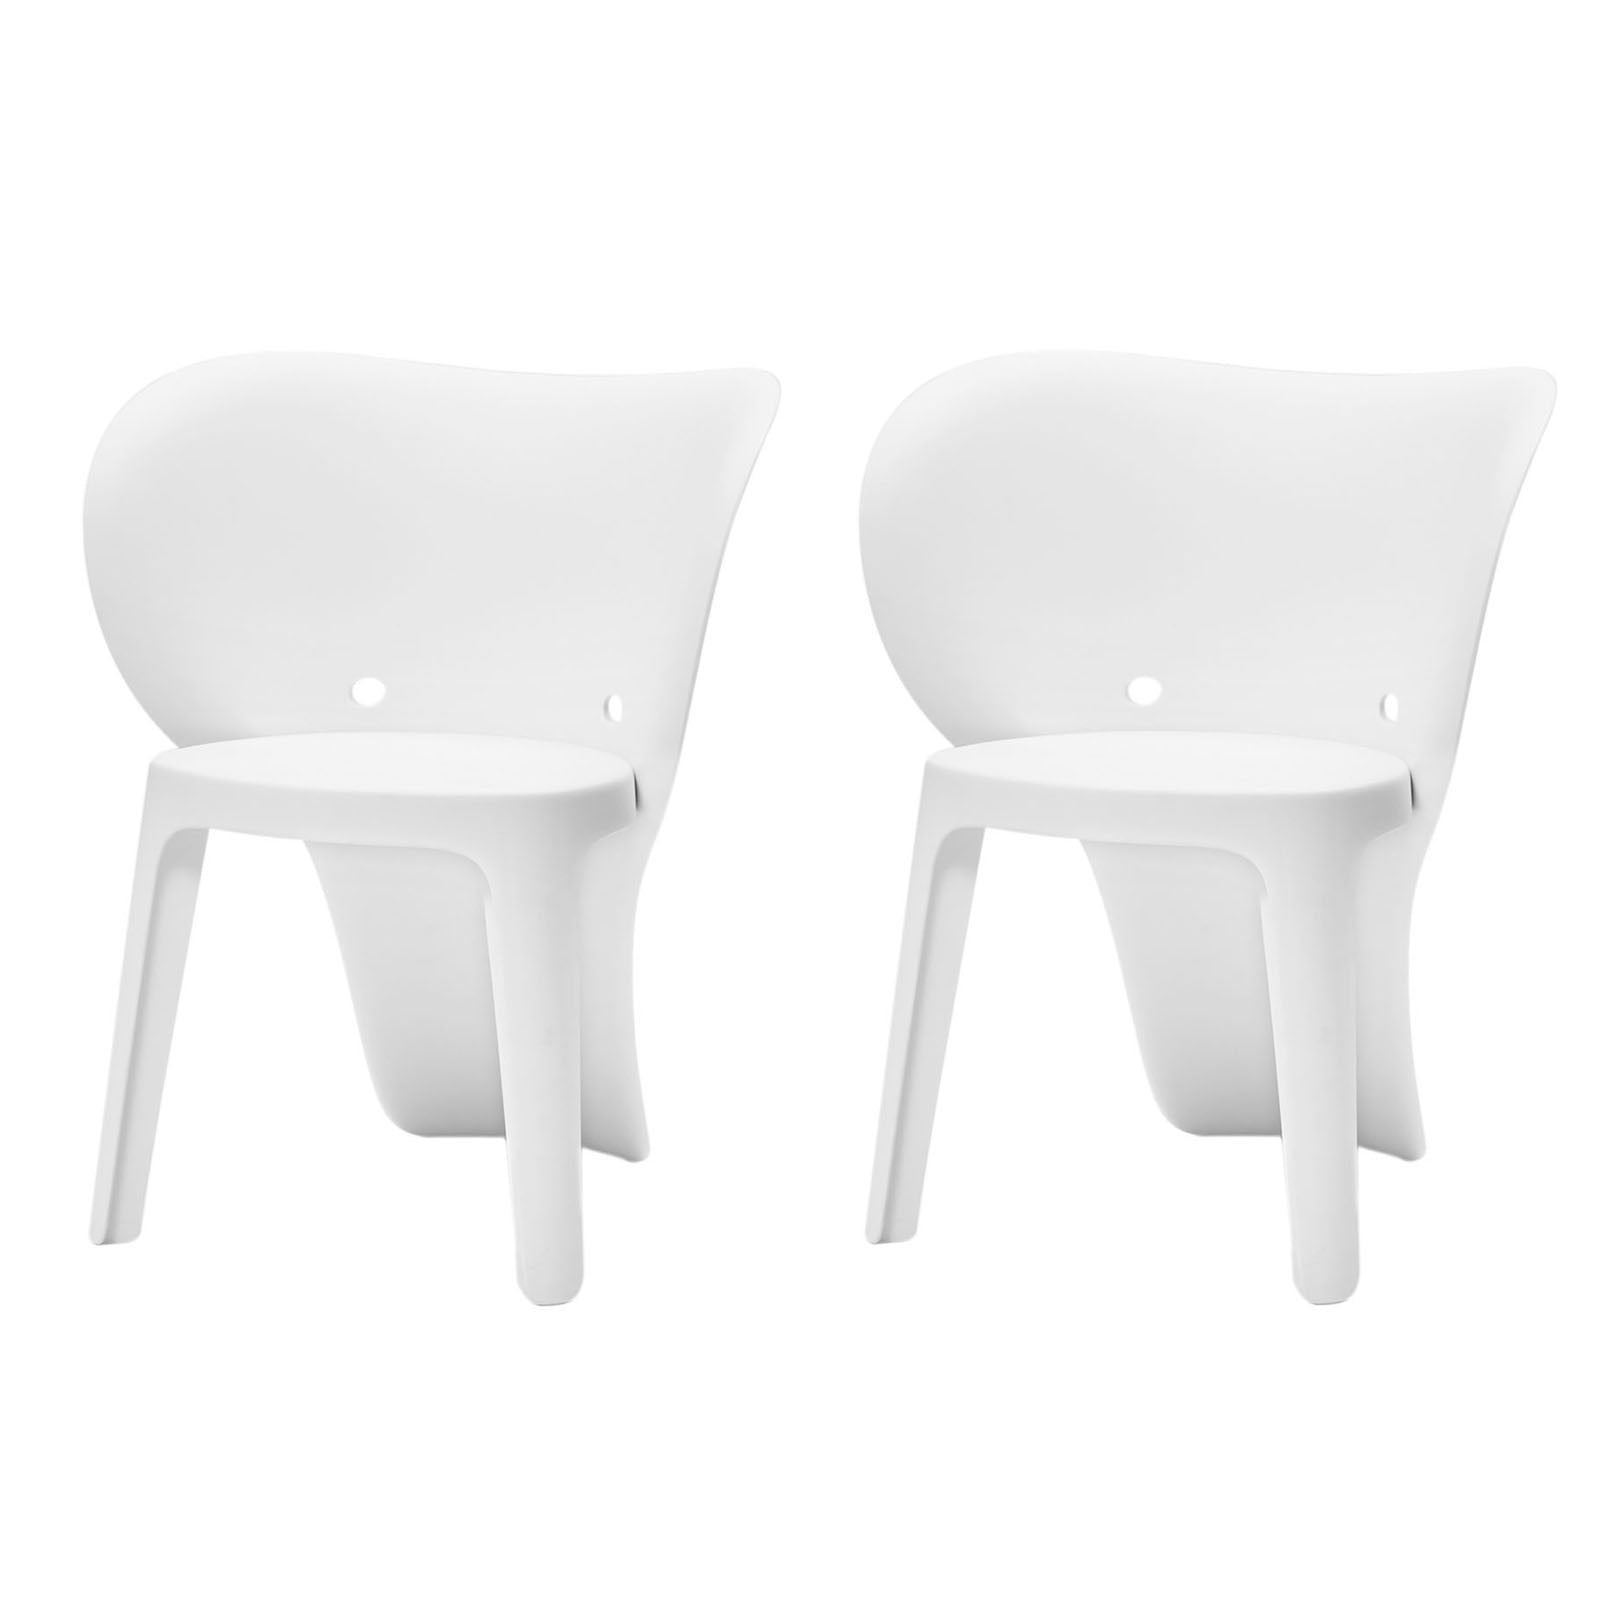 SoBuy Set 2 Children's Chairs Colored chair white children's stool Elephant Shape KMB12-Wx2